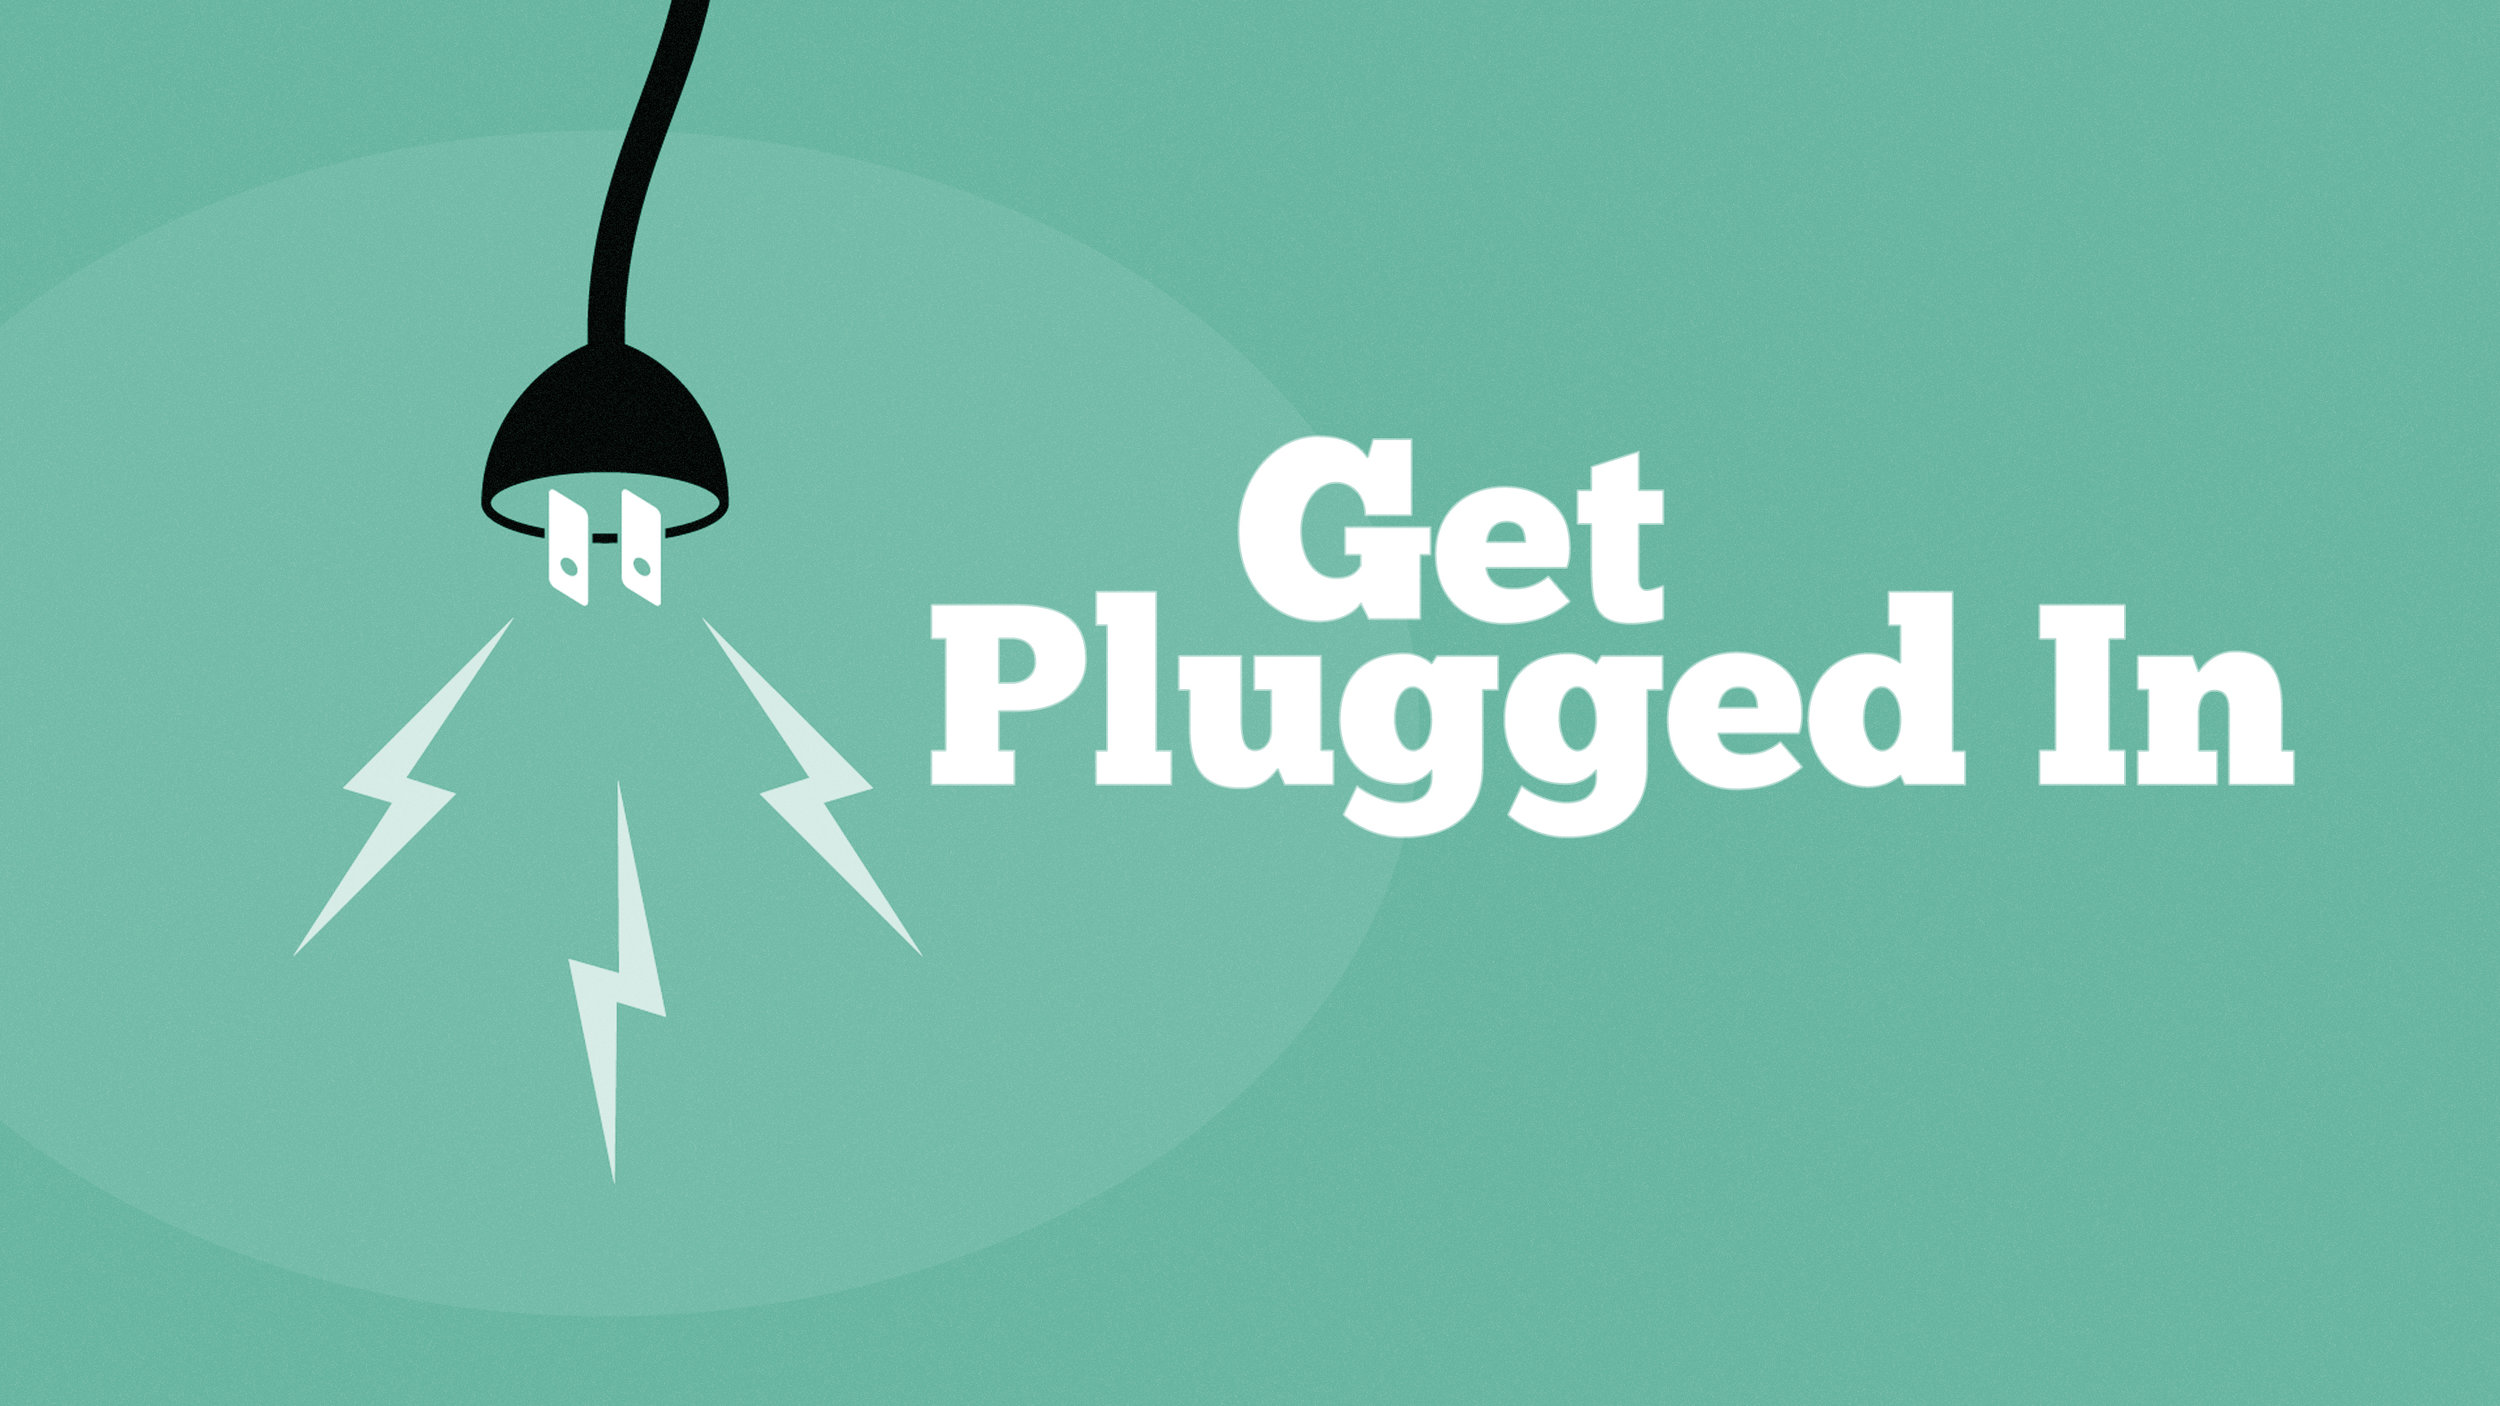 get_plugged_in.jpg